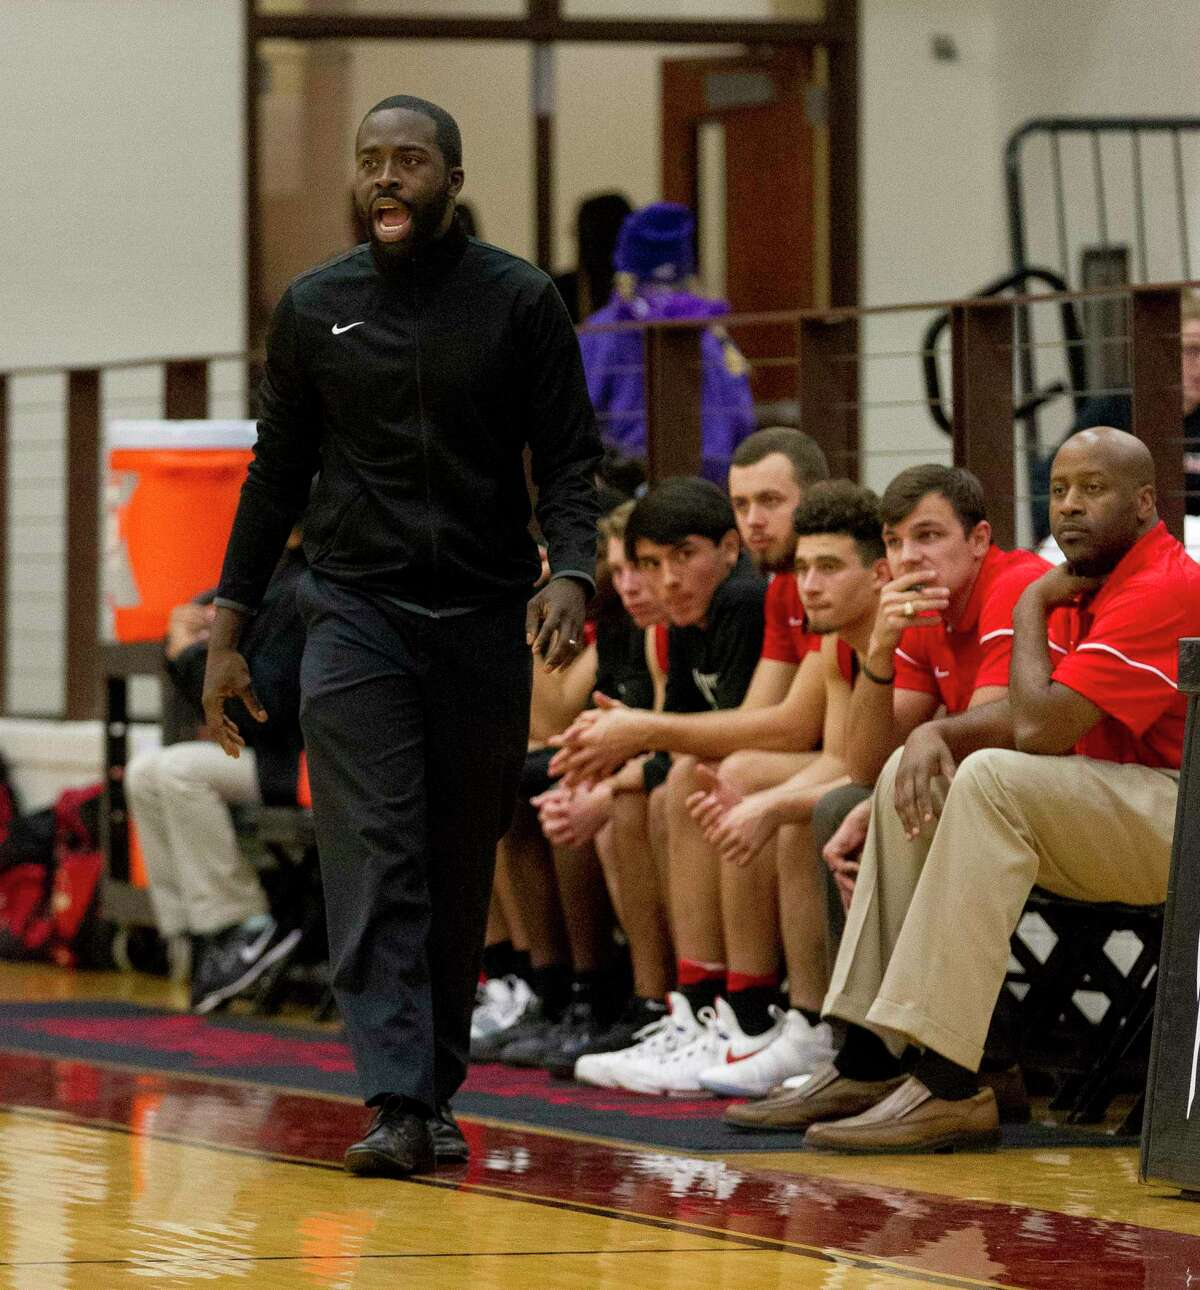 Caney Creek head coach Randy Appiah shouts instructions to players during a 2017 game at Porter. Aundre Branch is first from the right on the bench.